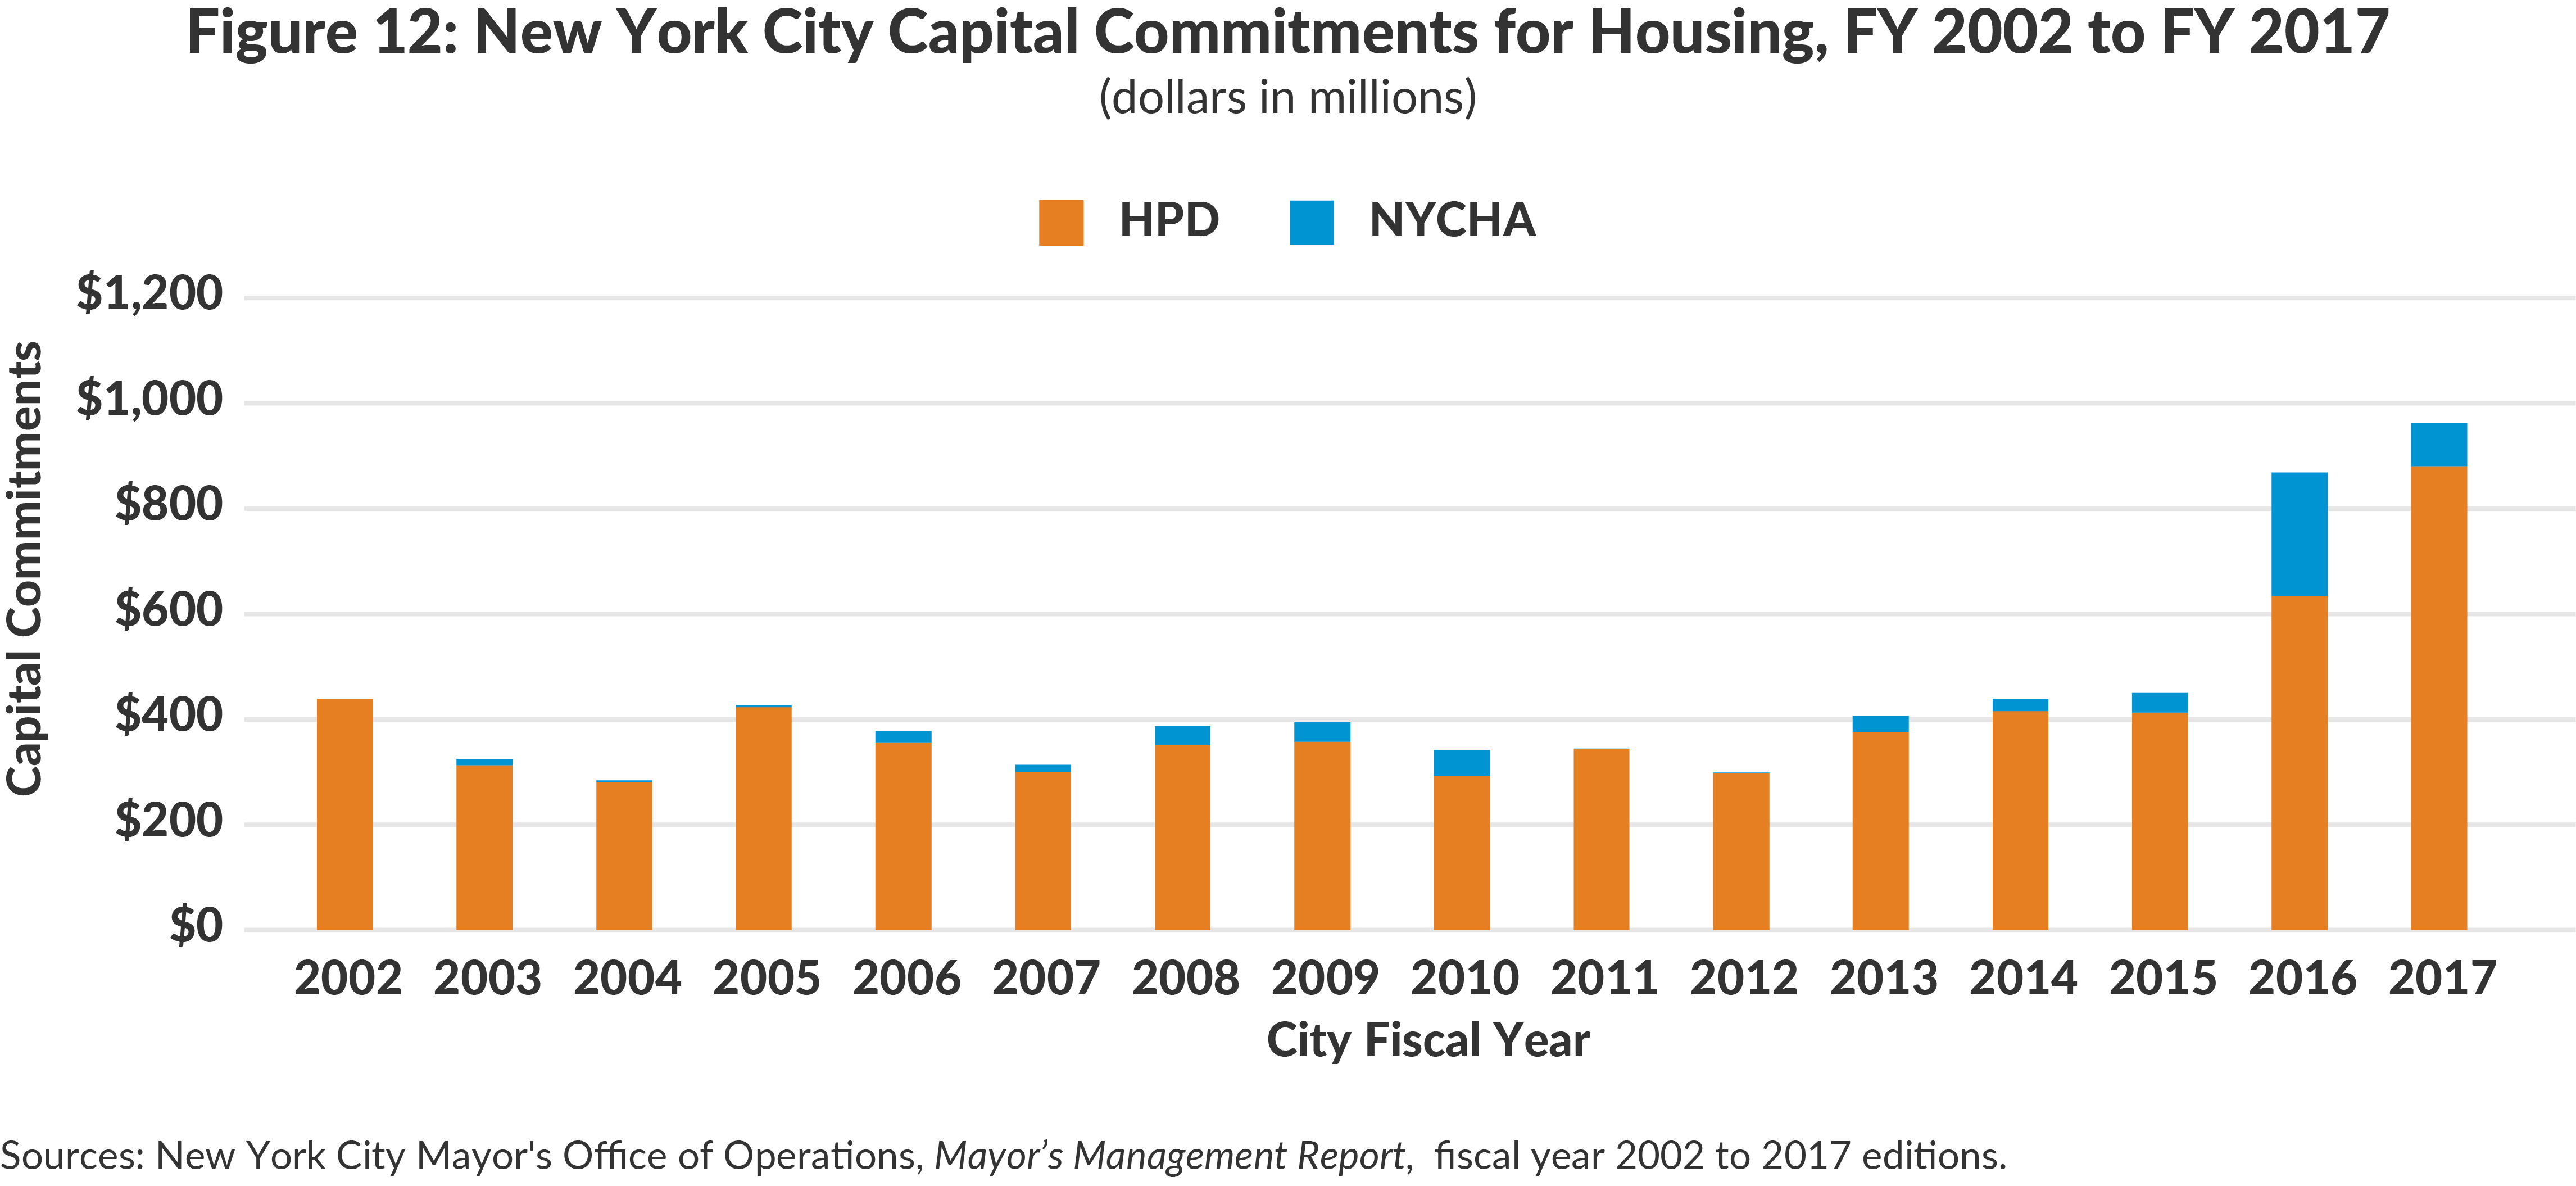 Figure 12: New York City Capital Commitments for Housing